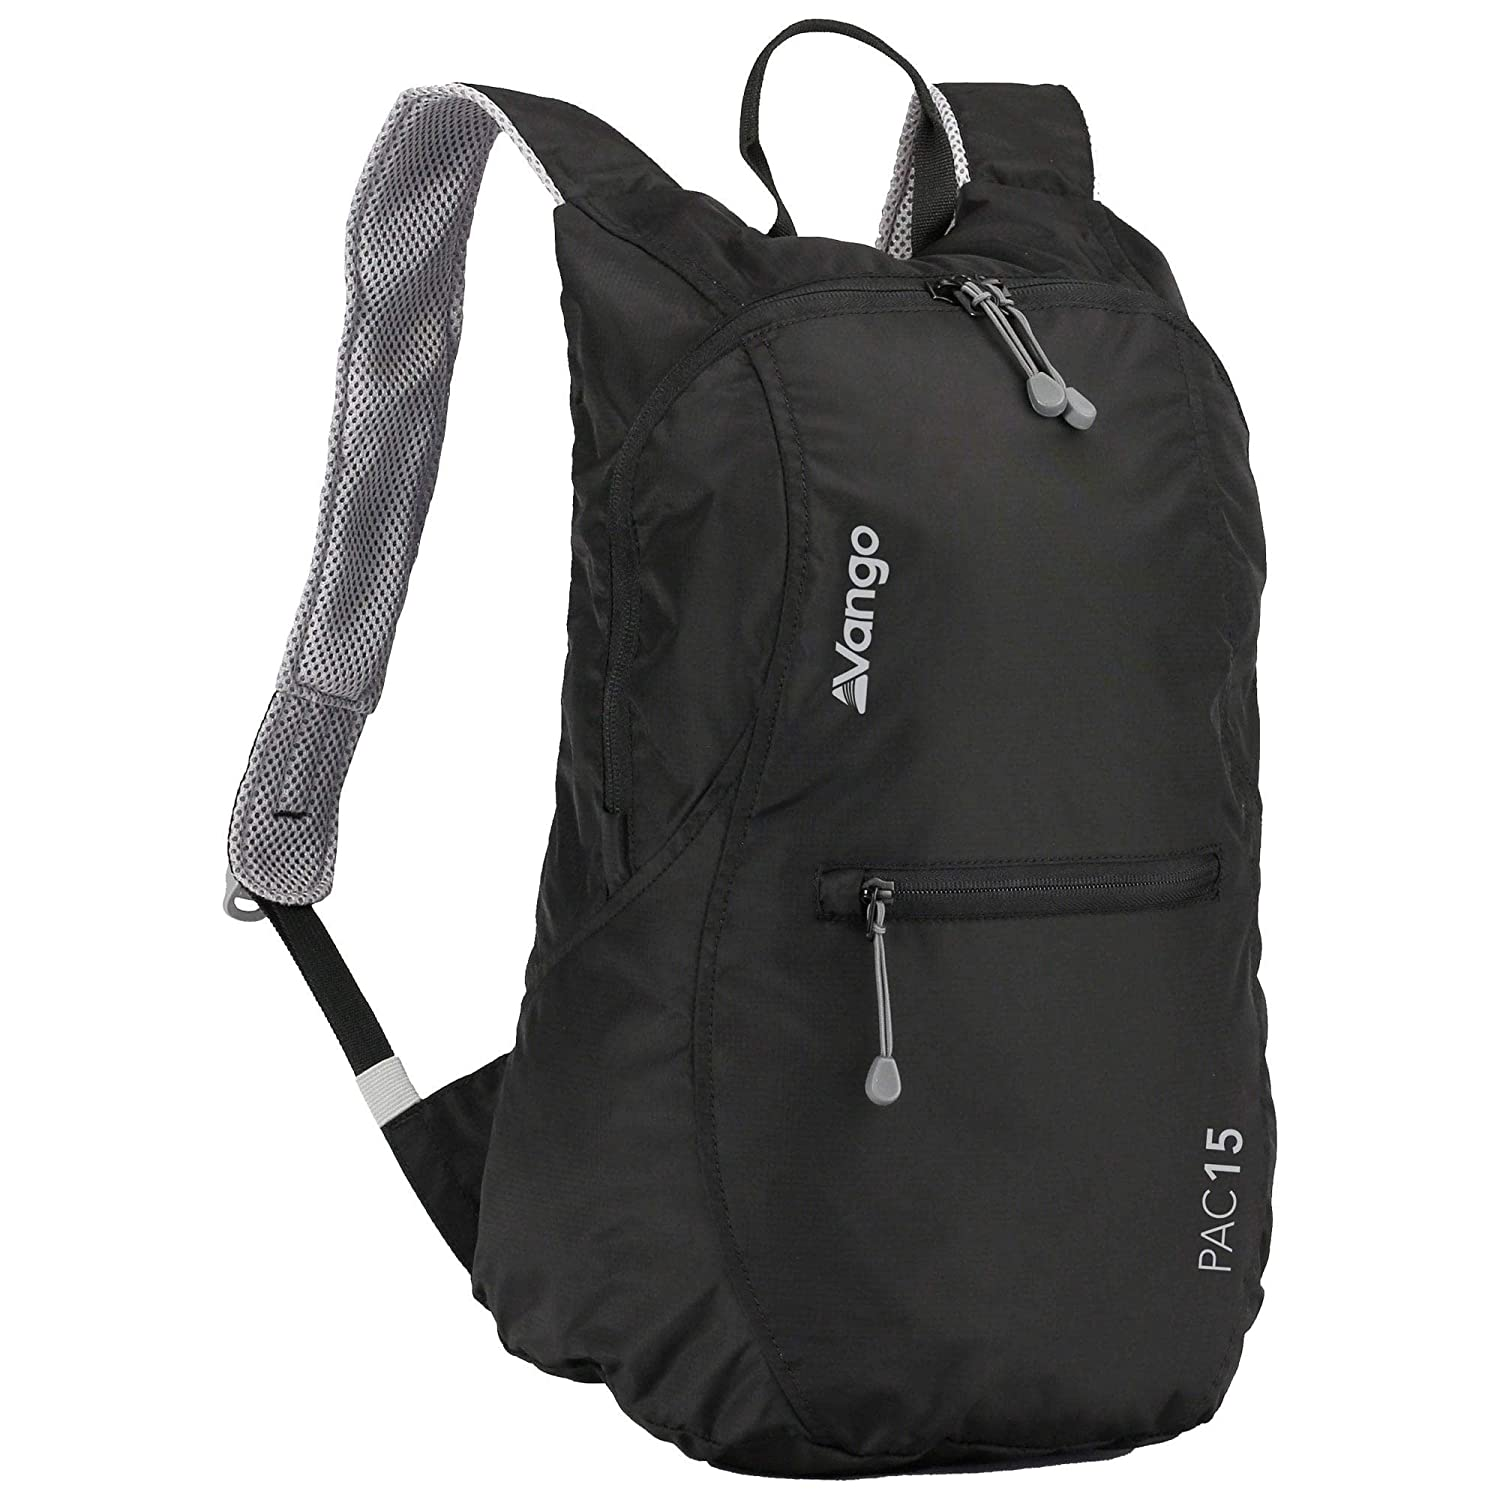 91f62286b39a Vango Lightweight Outdoor Backpack available in Black - 15 Litres   Amazon.co.uk  Sports   Outdoors